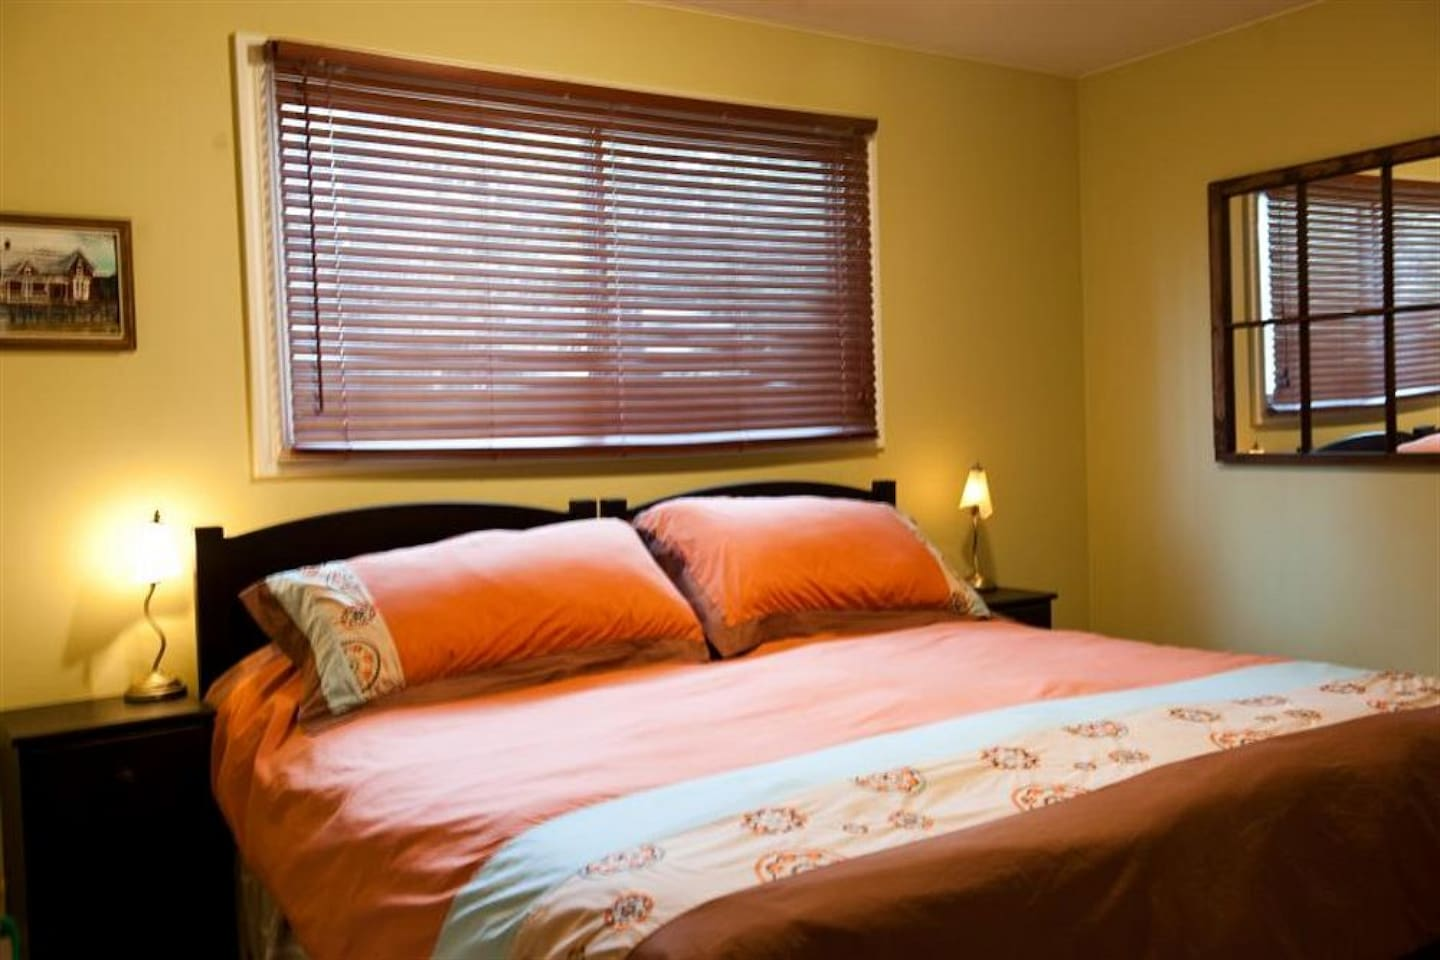 This room is part of a Bed & Breakfast The room provides a bed option of either a King size bed or of 2 Single beds. Pleases advise which bed set up you require.   Includes full breakfast. Amenities include Private bathroom cable TV, wifi, hot tub